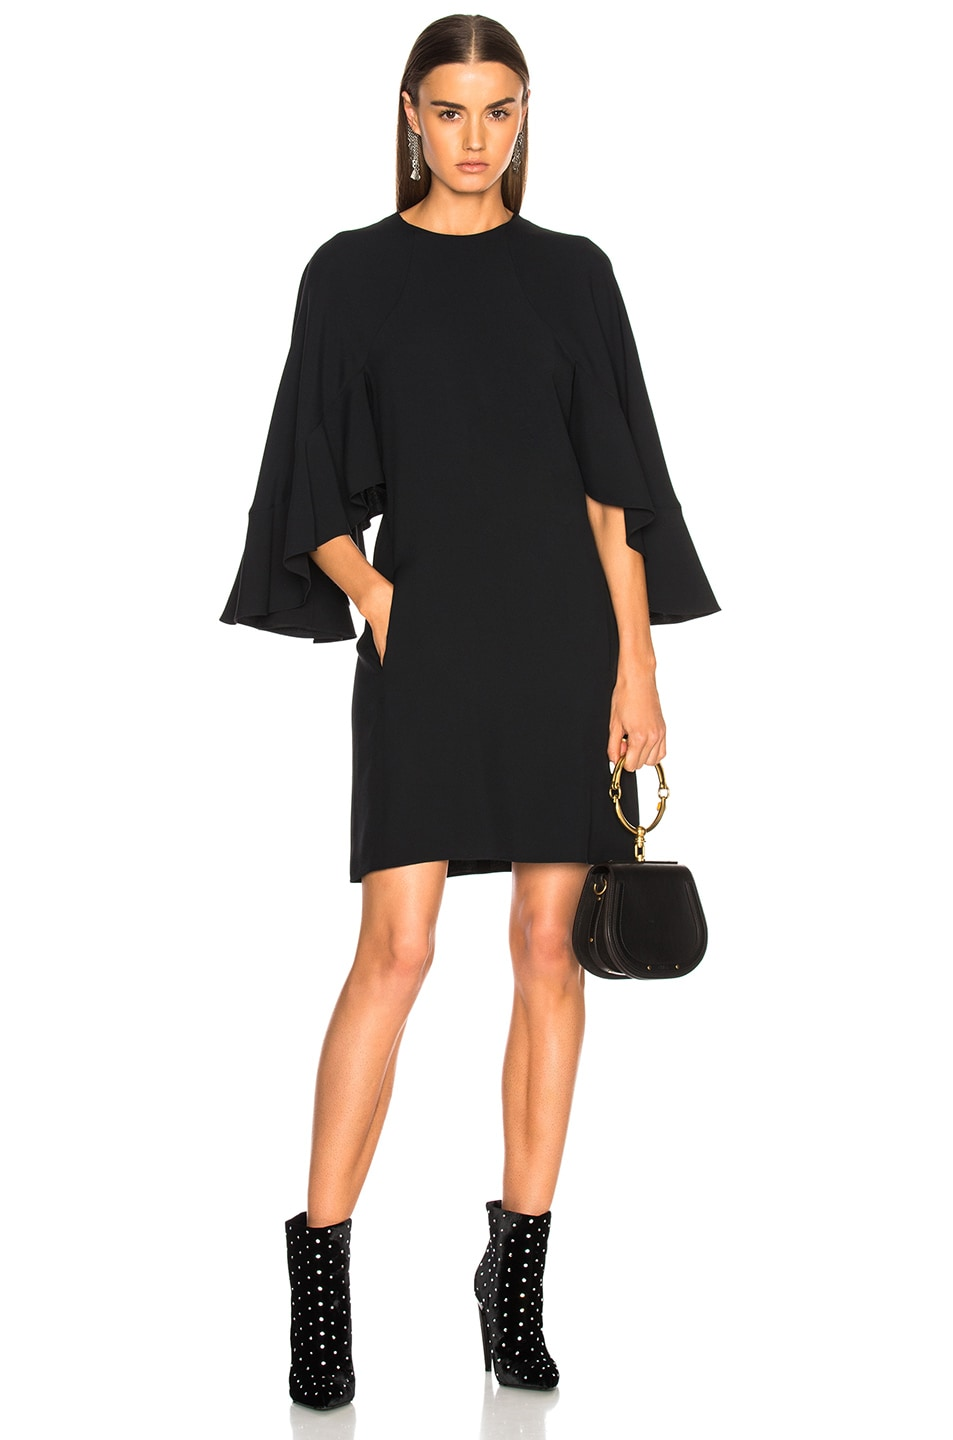 Chloe Light Cady Ruffle Sleeve Mini Dress in Black